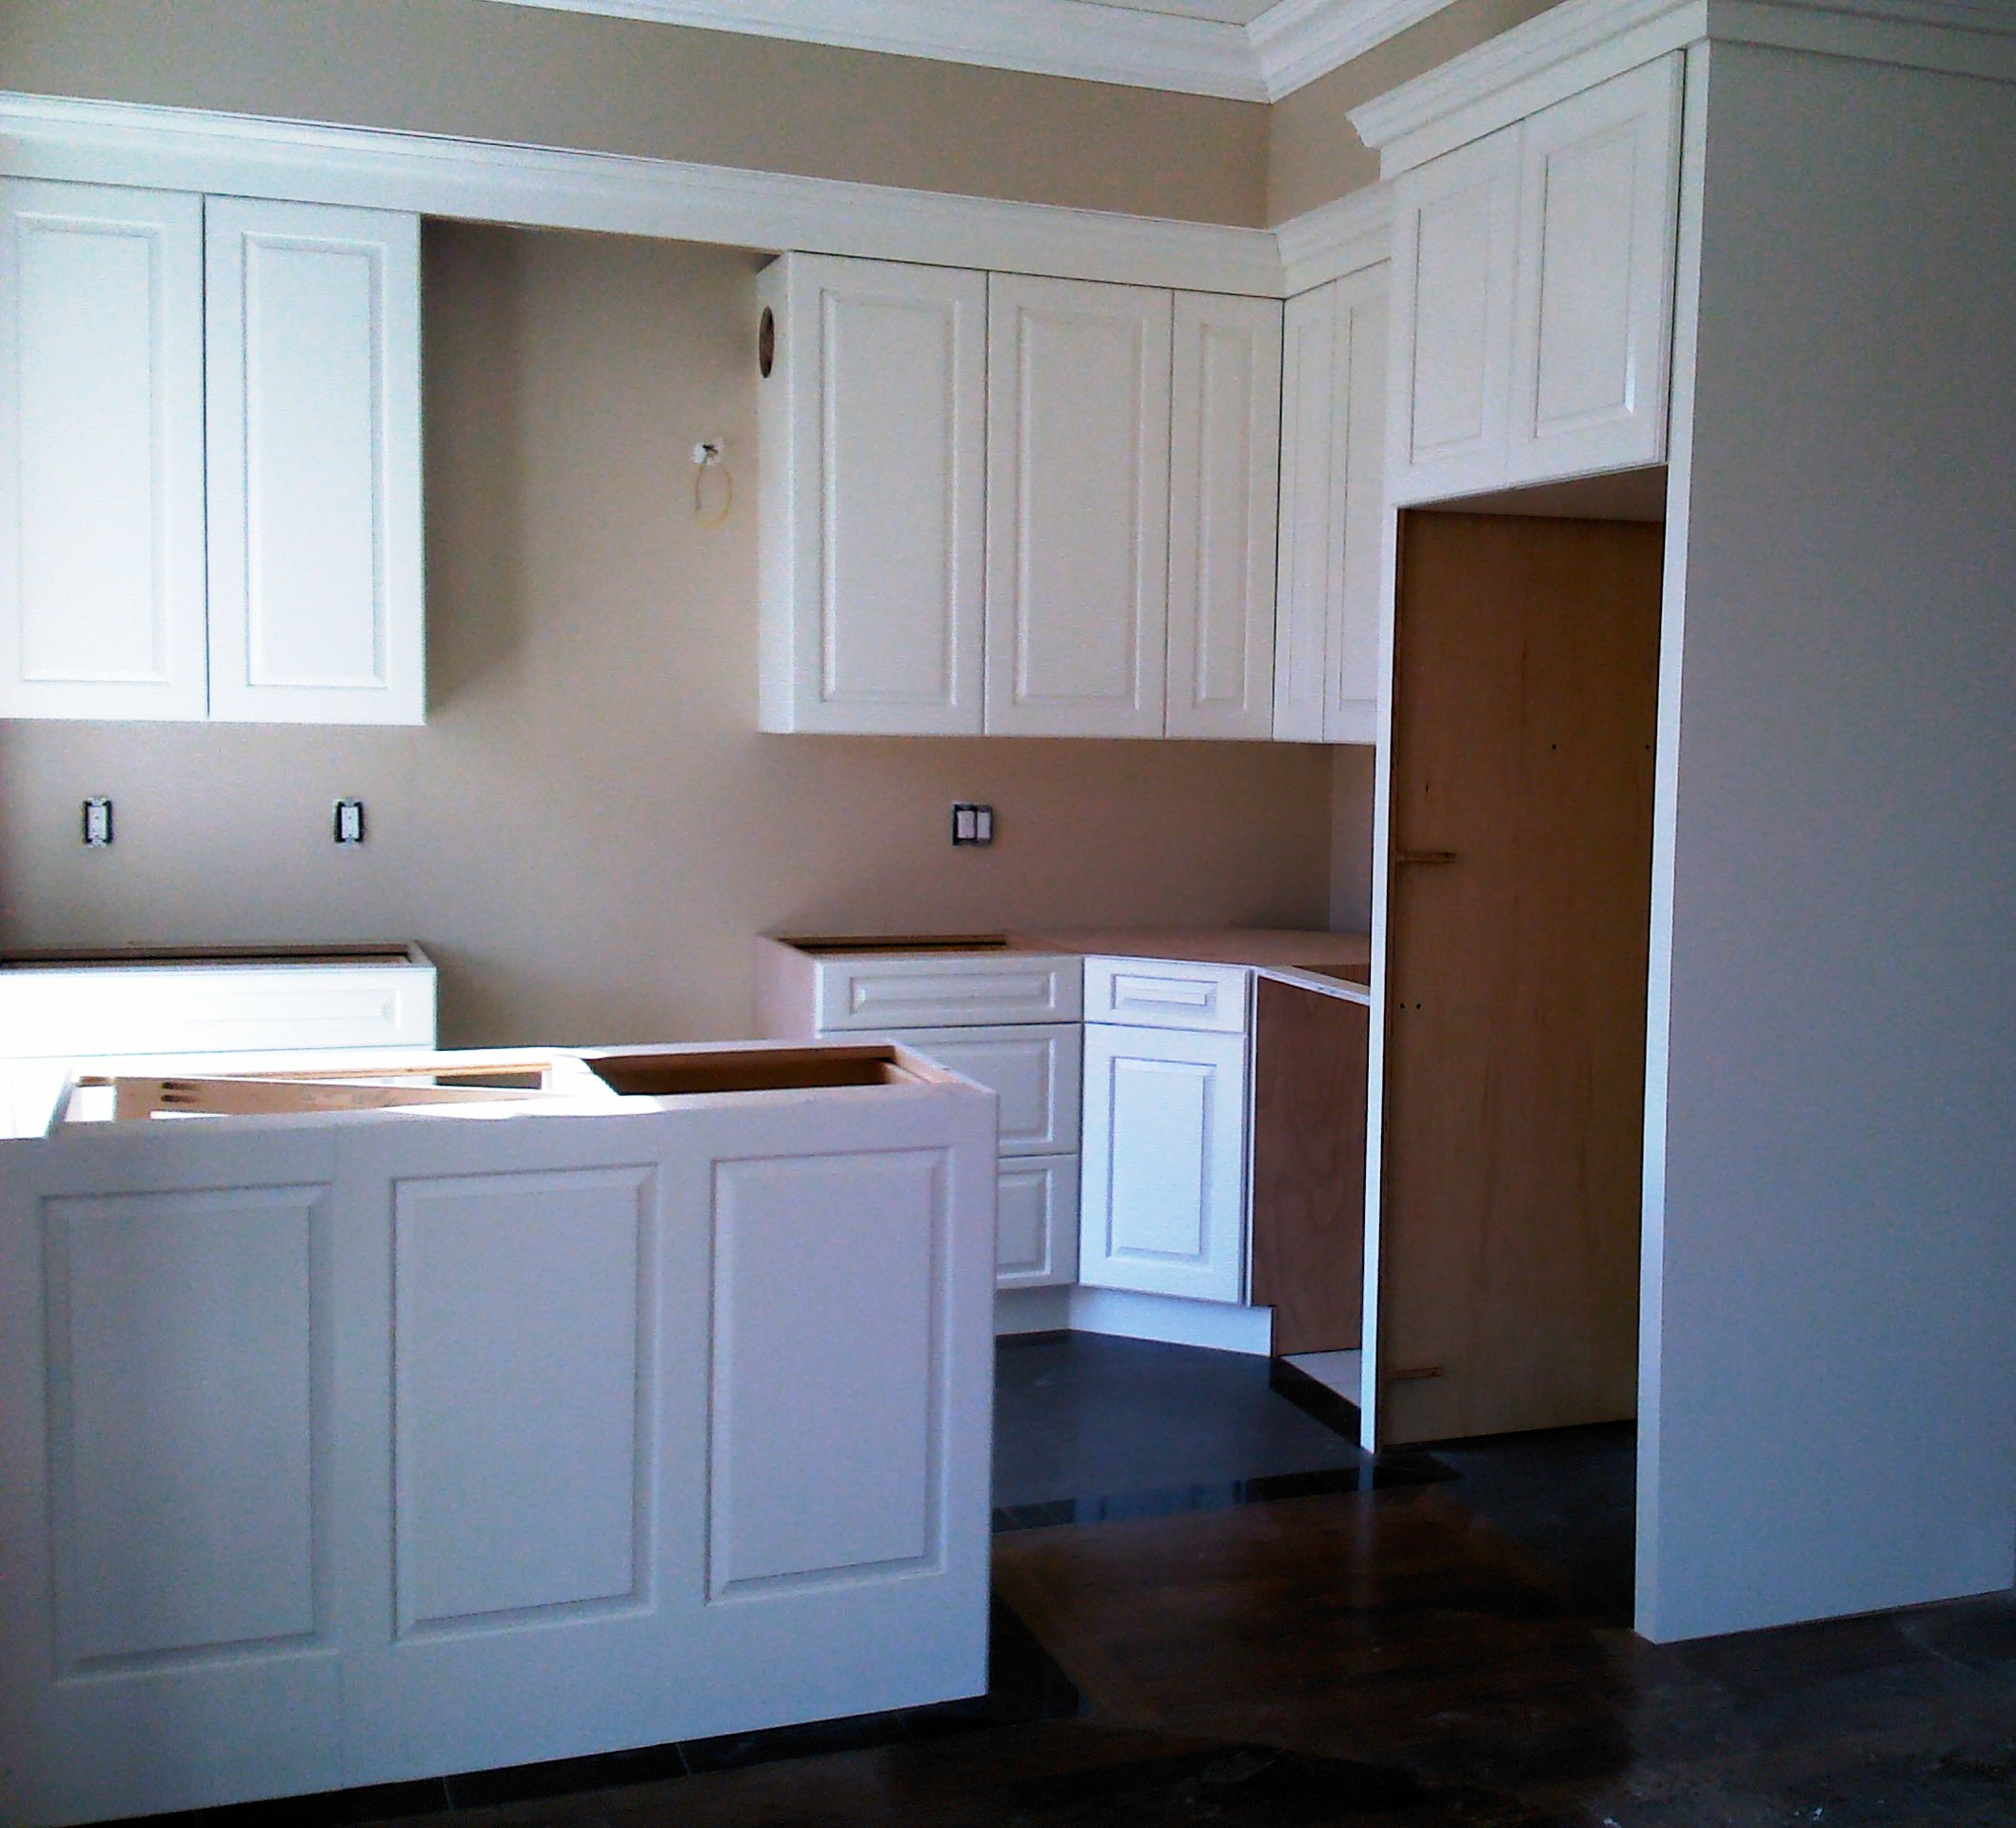 Installing Crown Molding On Kitchen Cabinets: Kitchen Cabinet Installation